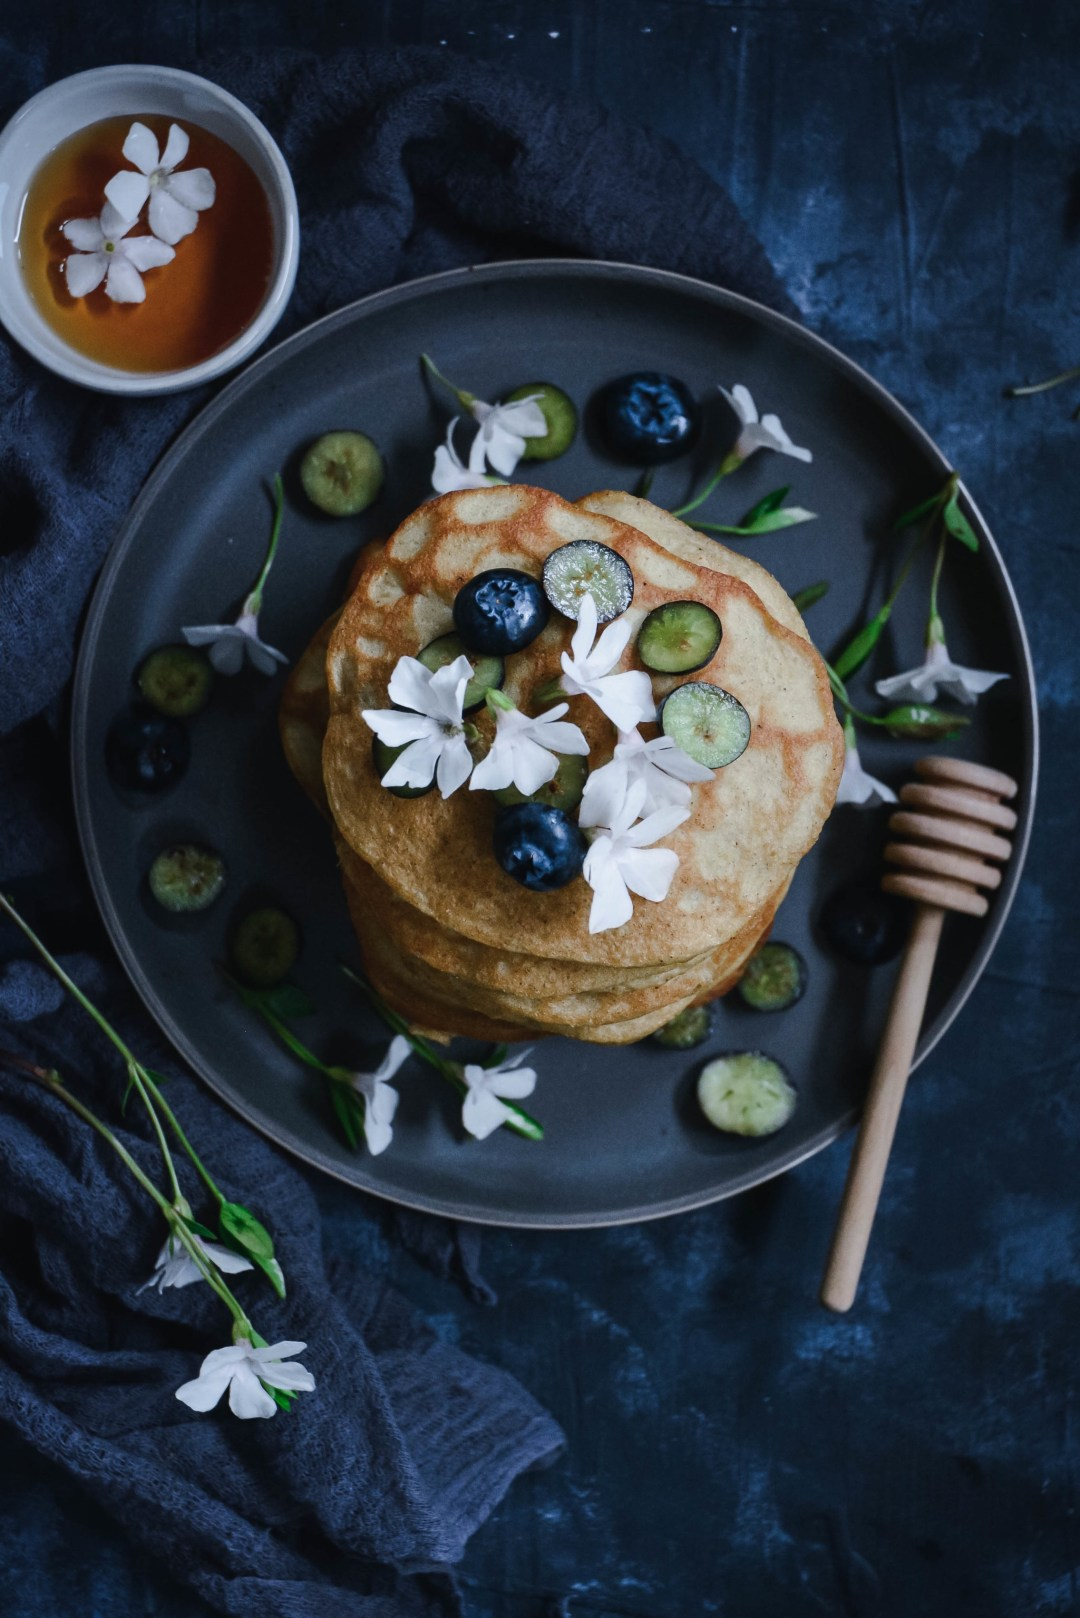 If you want to take your paleo pancakes to a new level, try adding cardamom and orange blossom water to them! The combination is incredibly flavorful, creating a delicious unexpected pancake. Try it for yourself! #paleopancakes #paleobreakfast #paleo #glutenfreepancakes #grainfreepancakes #glutenfreebreakfast #glutenfree #grainfreepancakes #grainfree #vegetarian #breakfast #brunch #orangeblossomwater #orangeflowerwater #calmeats